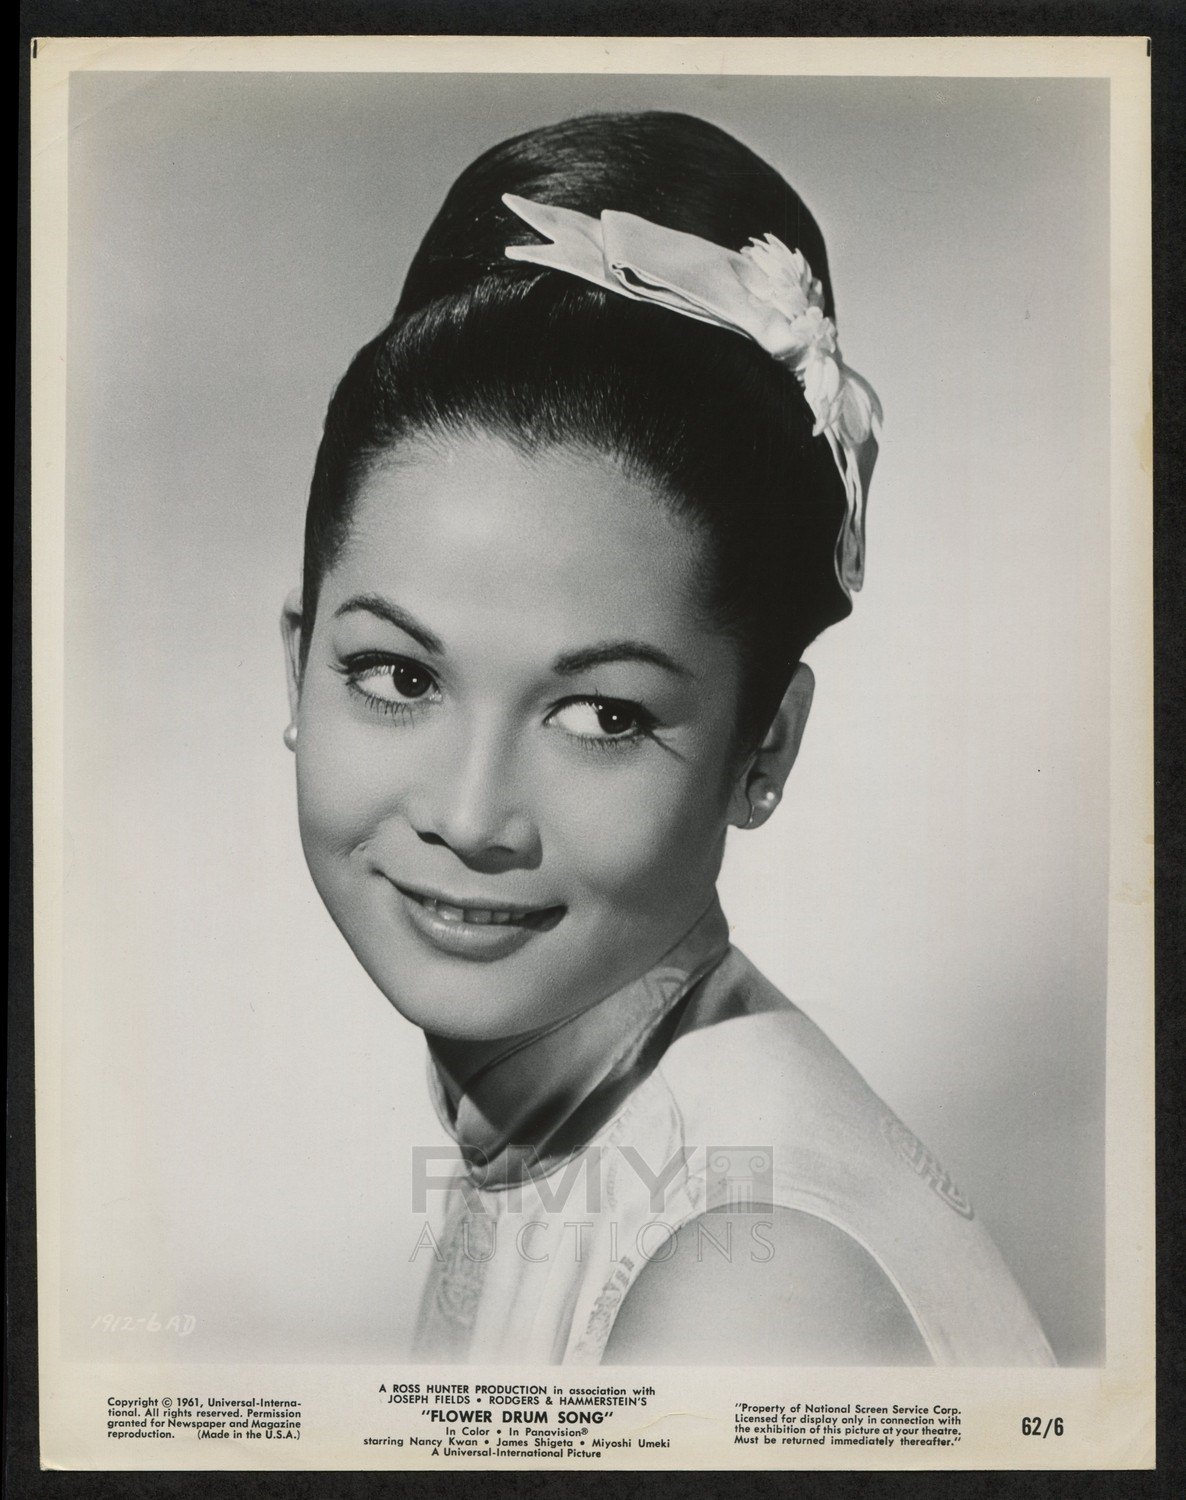 nancy kwan height